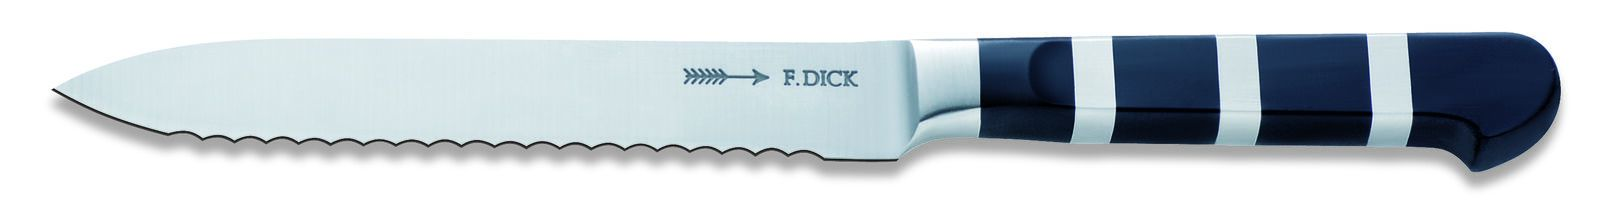 "F. Dick (8191013) 5"" Utility Knife, Serrated Edge - 1905 Series-cityfoodequipment.com"